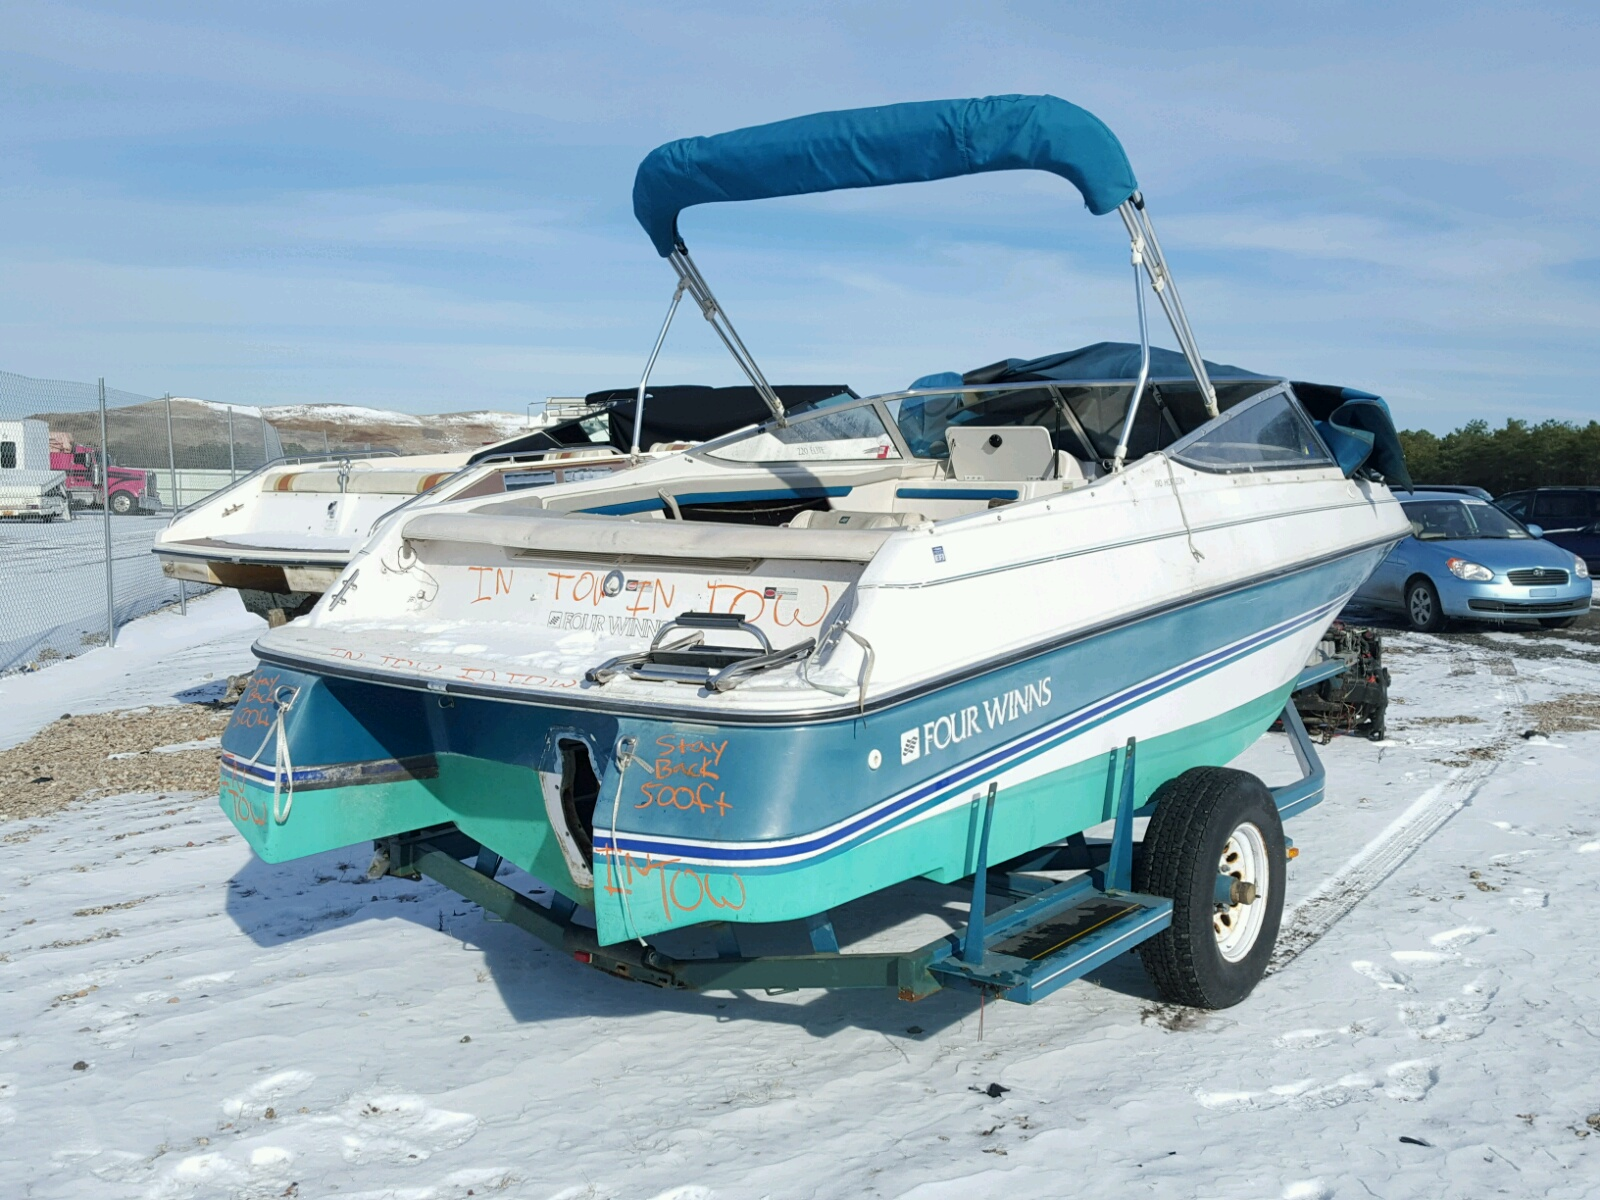 1994 Four Winds Boat for sale at Copart Brookhaven, NY Lot ...